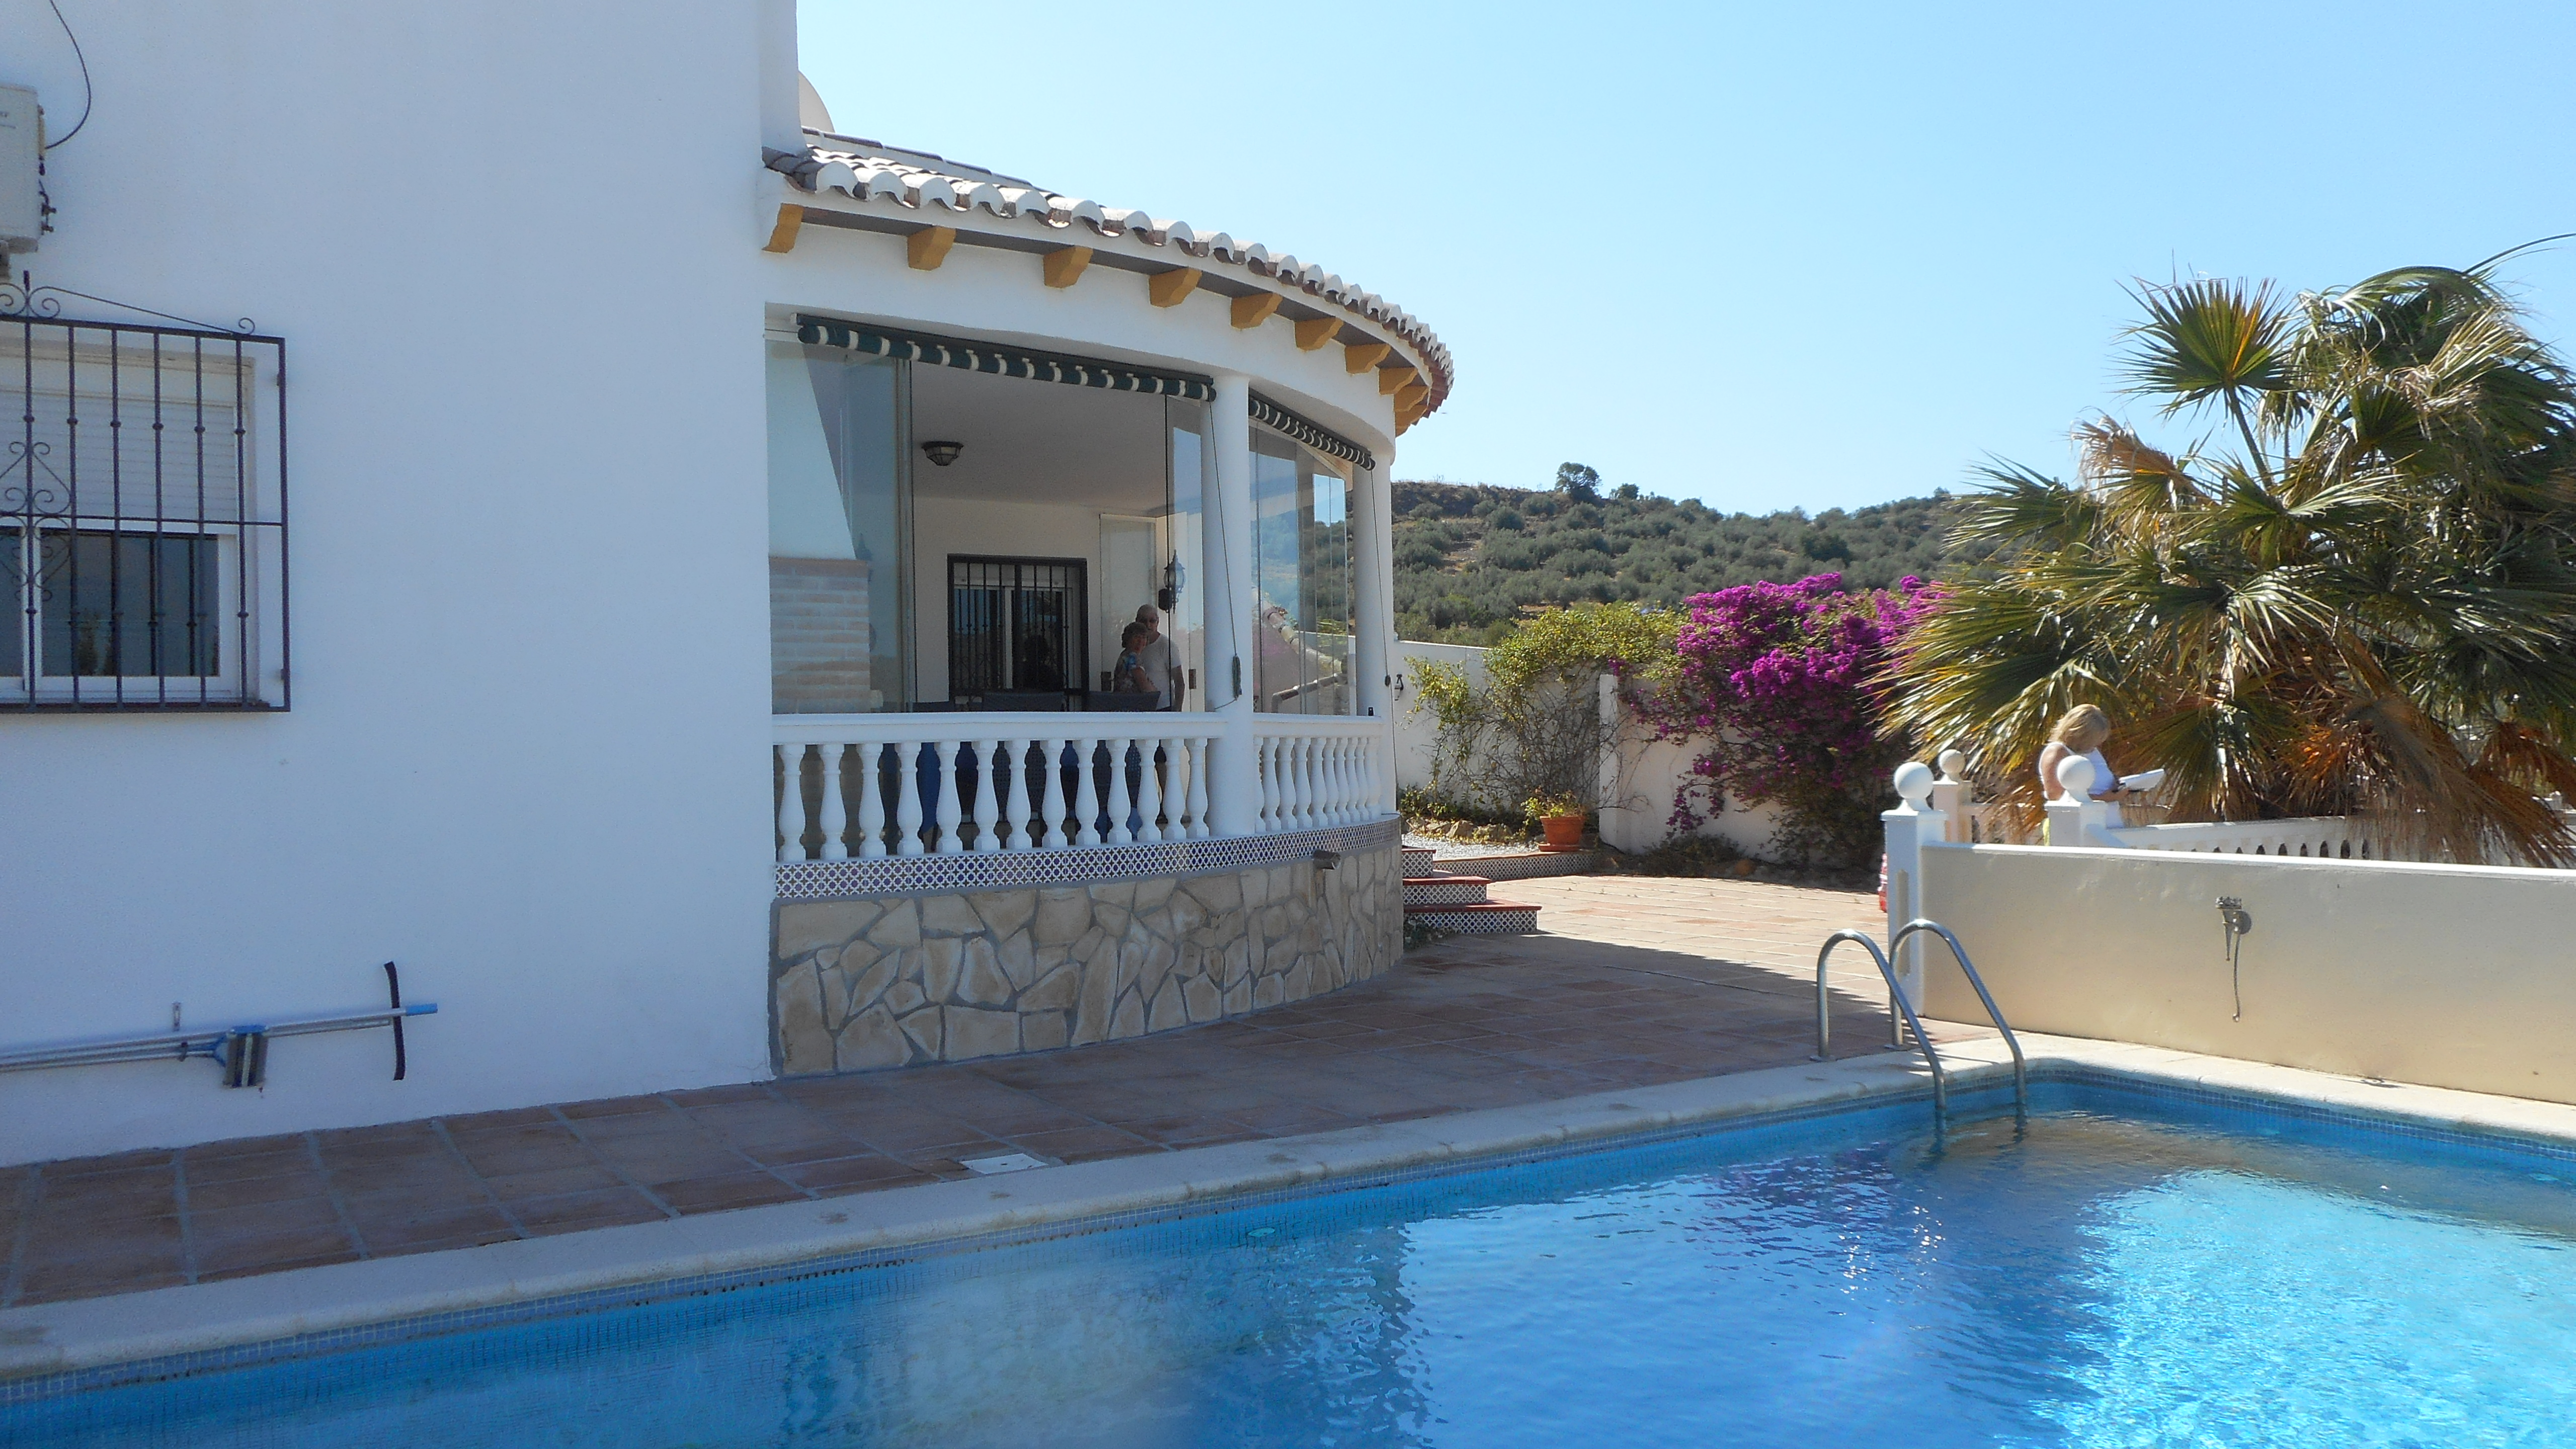 3 BEDROOM VILLA IN PUENTE DON MANUEL From £350/WEEK UP TO 6 PEOPLE